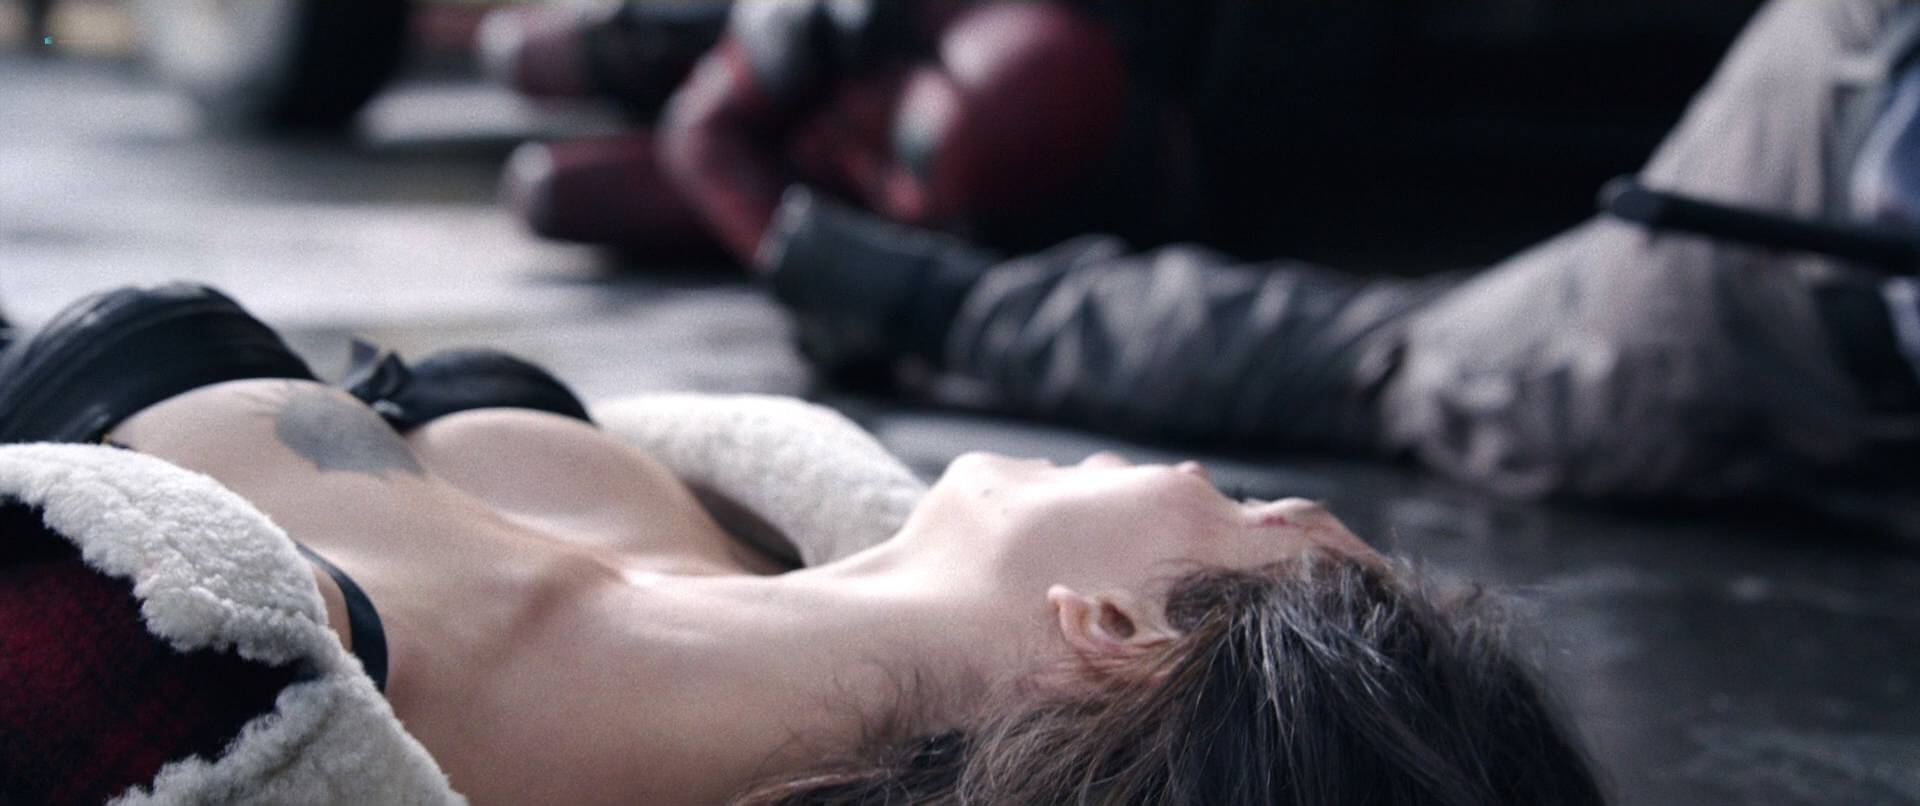 Morena Baccarin hot sex and uber sexy - Deadpool (2016) HD 1080p (2)